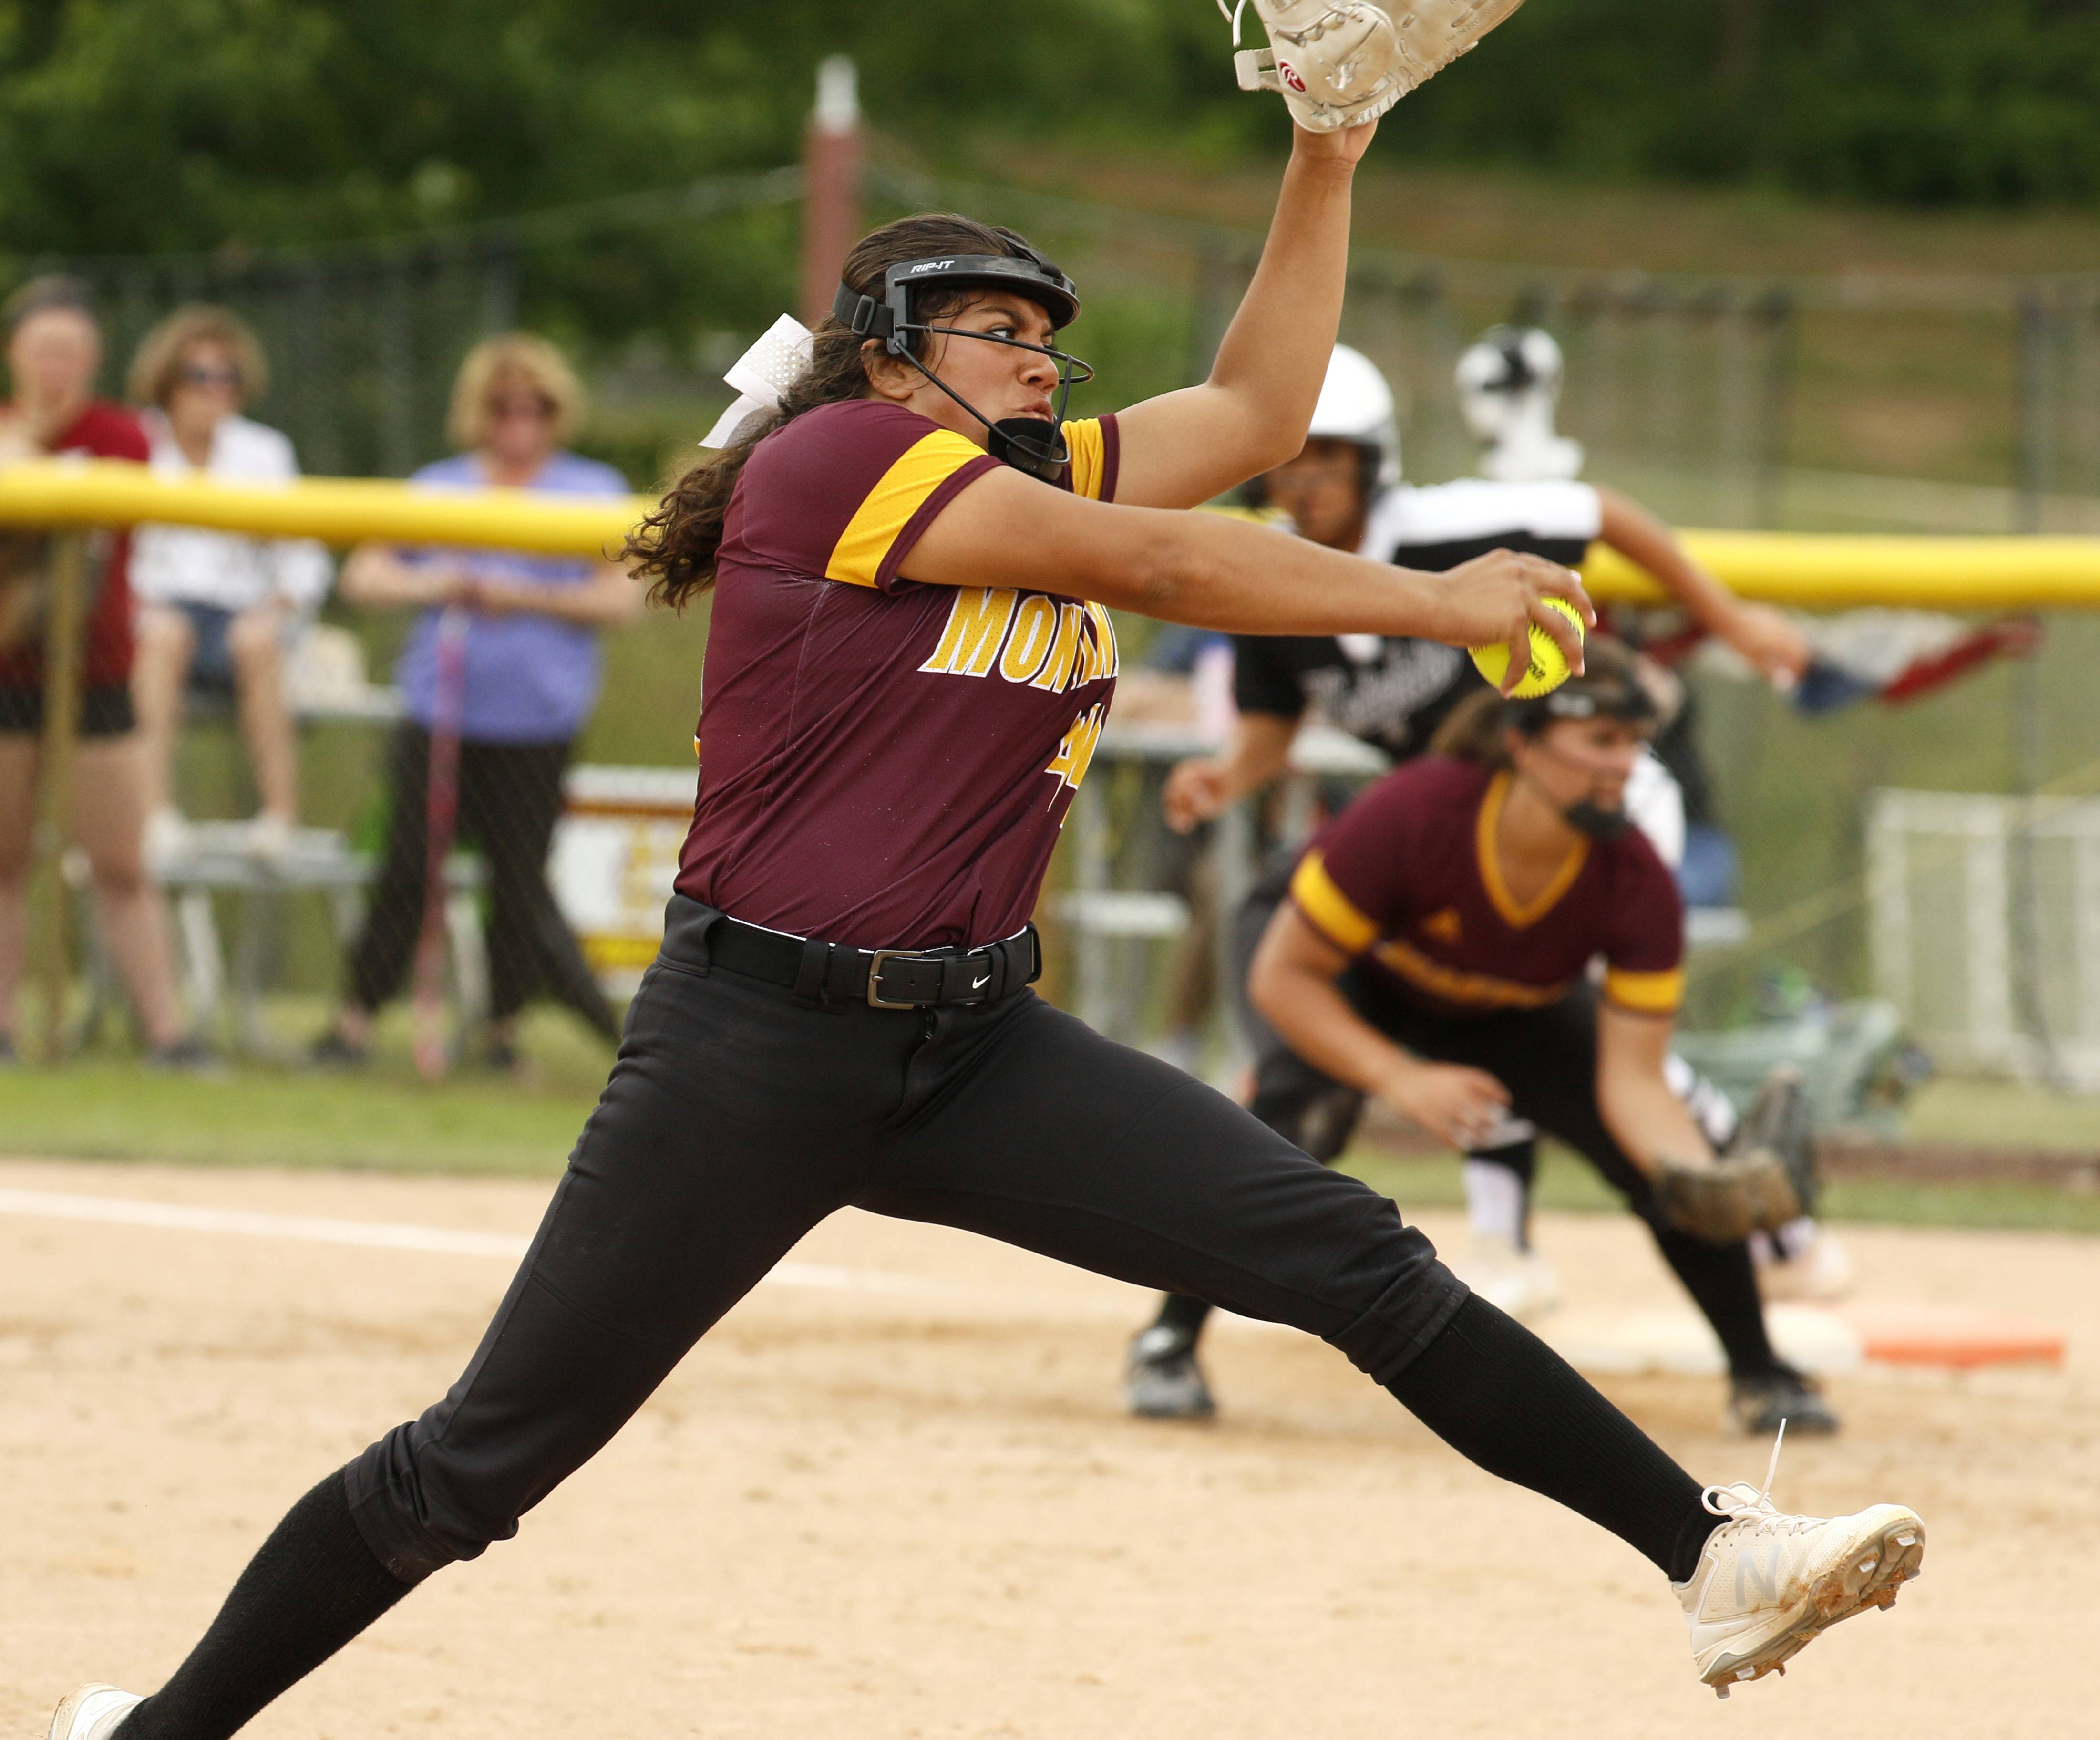 Montini Catholic pitcher Brianna Clifton throws to the plate against Kaneland.